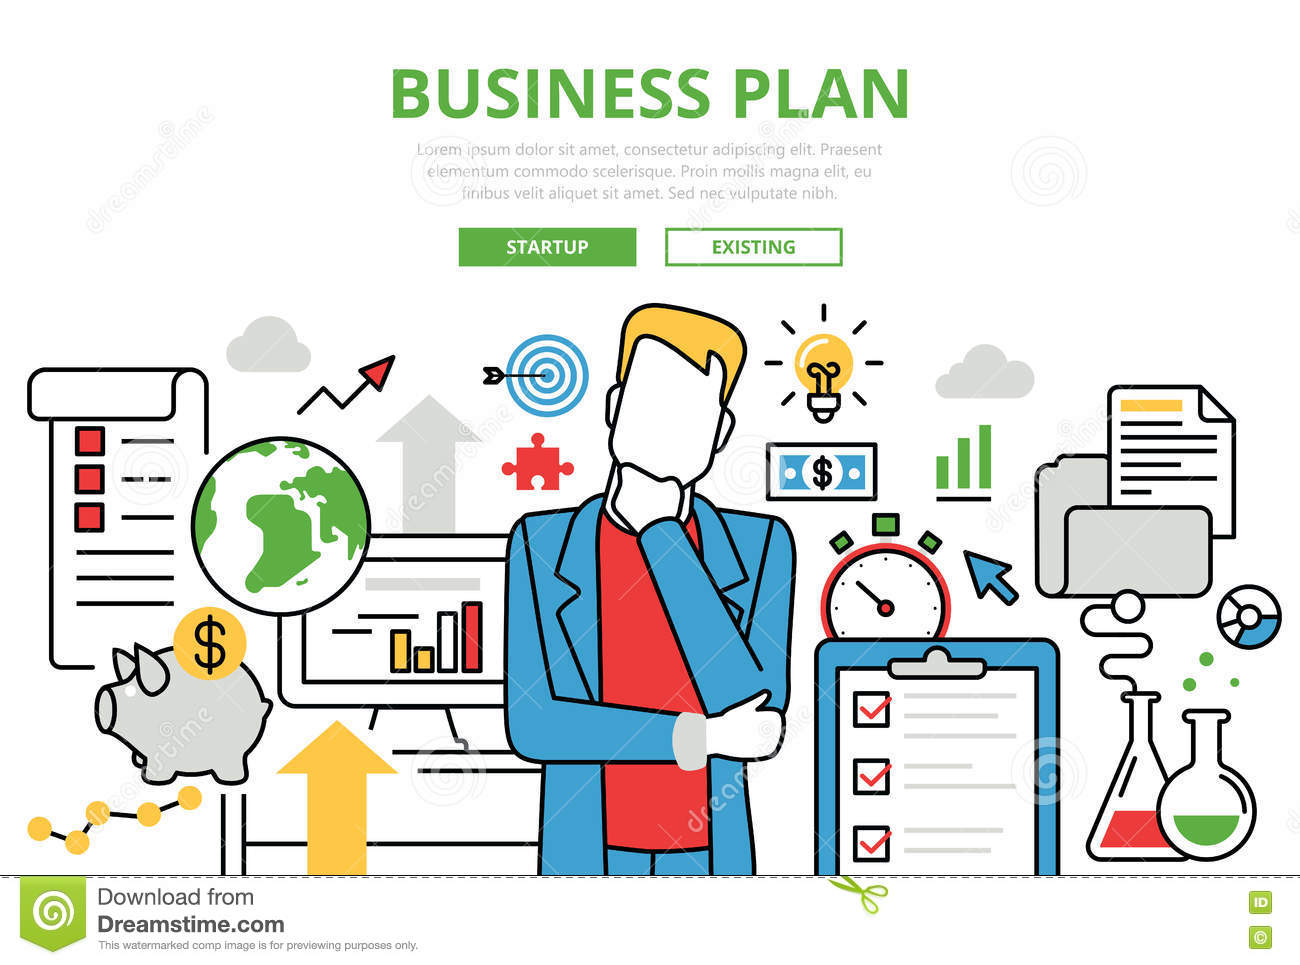 Preparing a business plan in France